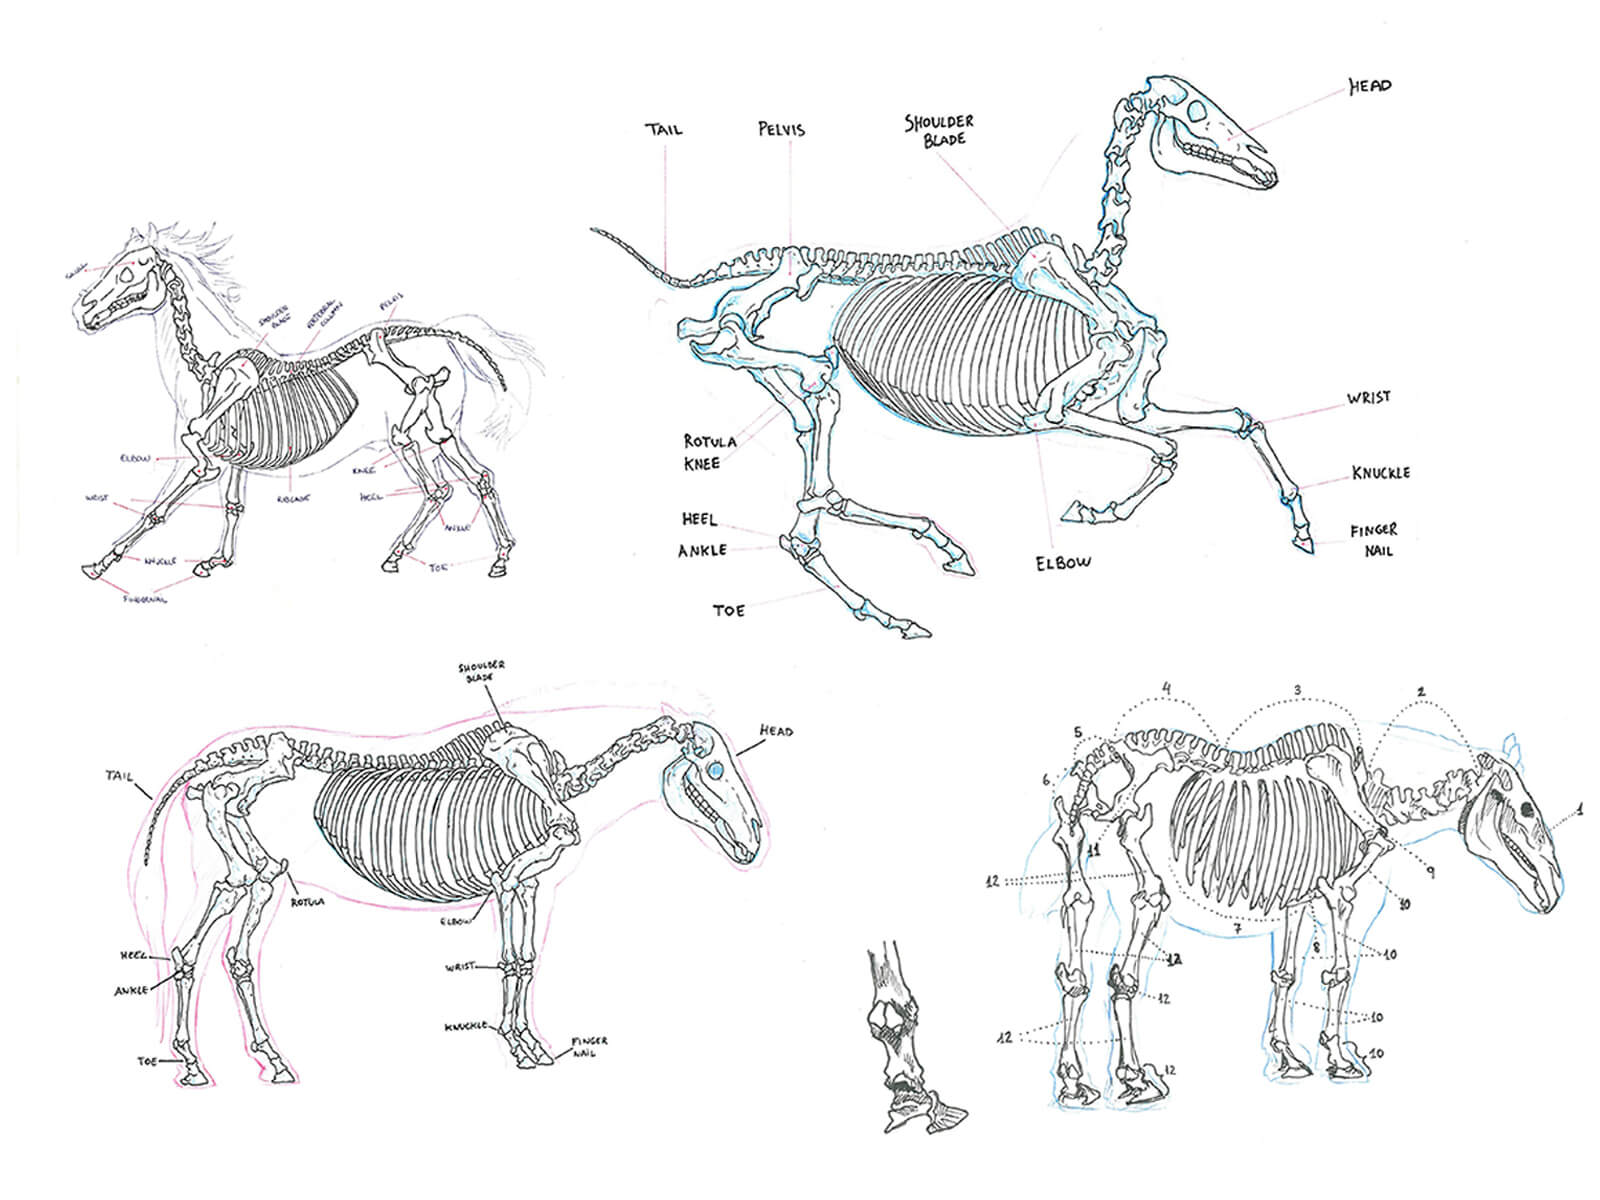 Black-and-white sketches of a horse's skeletal system both while standing still, and moving at a gallop and trot.